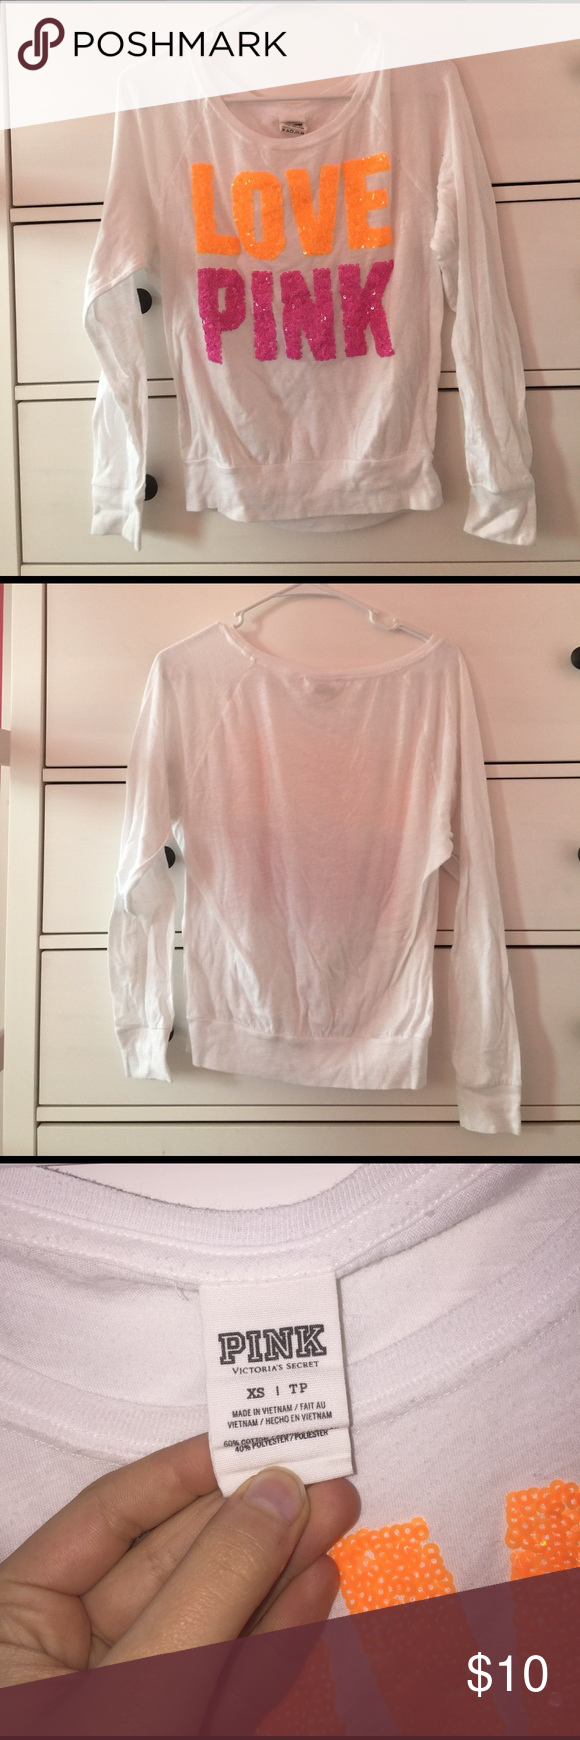 "Pink/Victoria's Secret long sleeve t-shirt Cute white long sleeve shirt with orange and pink sparkles that spell out ""LOVE PINK"". US ONLY!!! PINK Victoria's Secret Tops Tees - Long Sleeve"